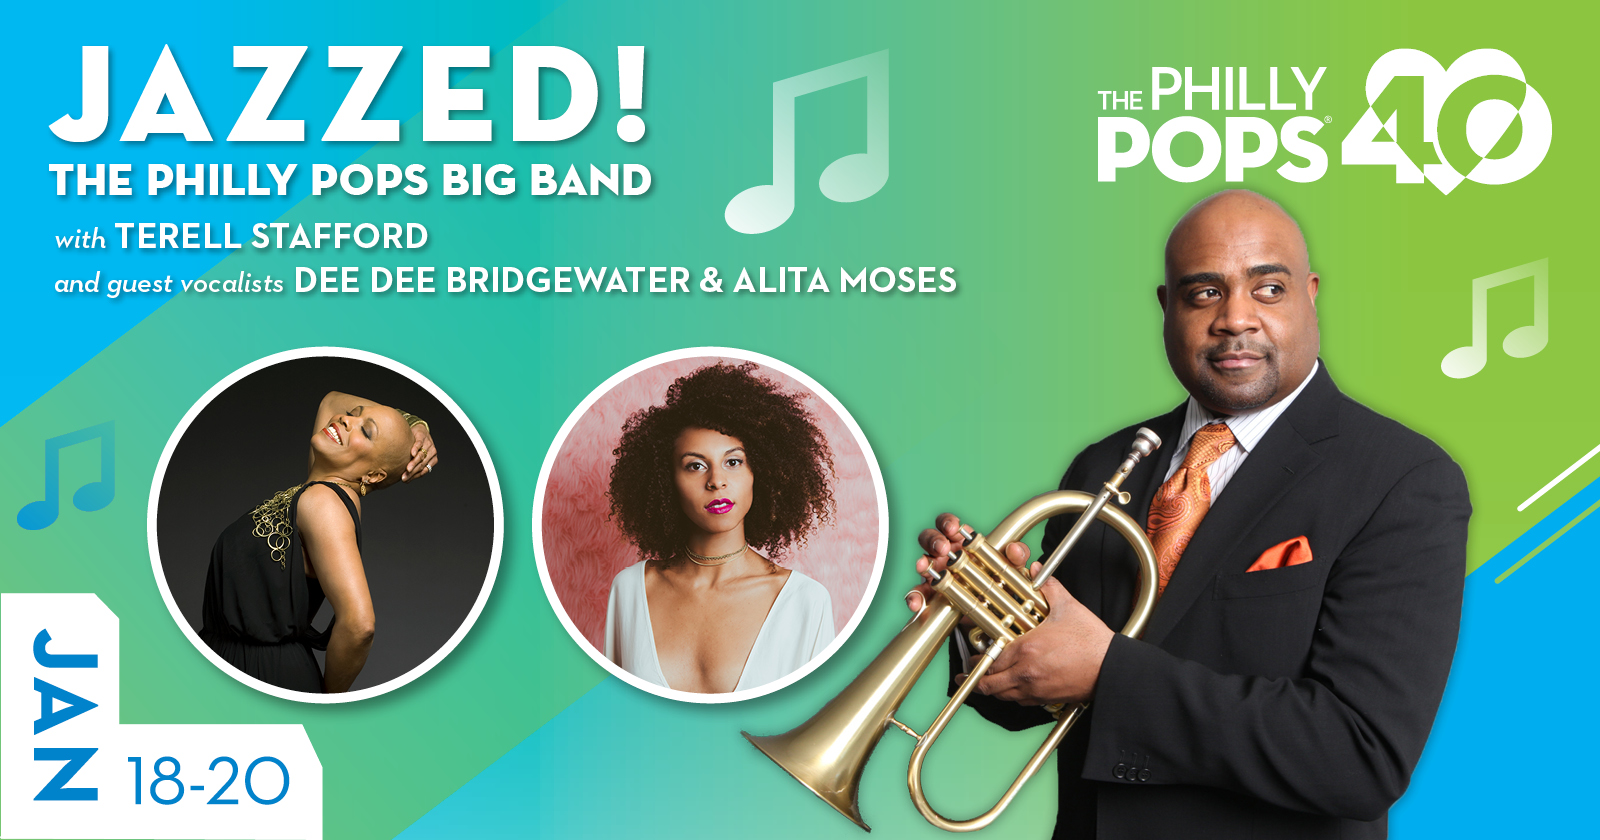 JAZZED! The Philly POPS BIG Band with Terell Stafford | The